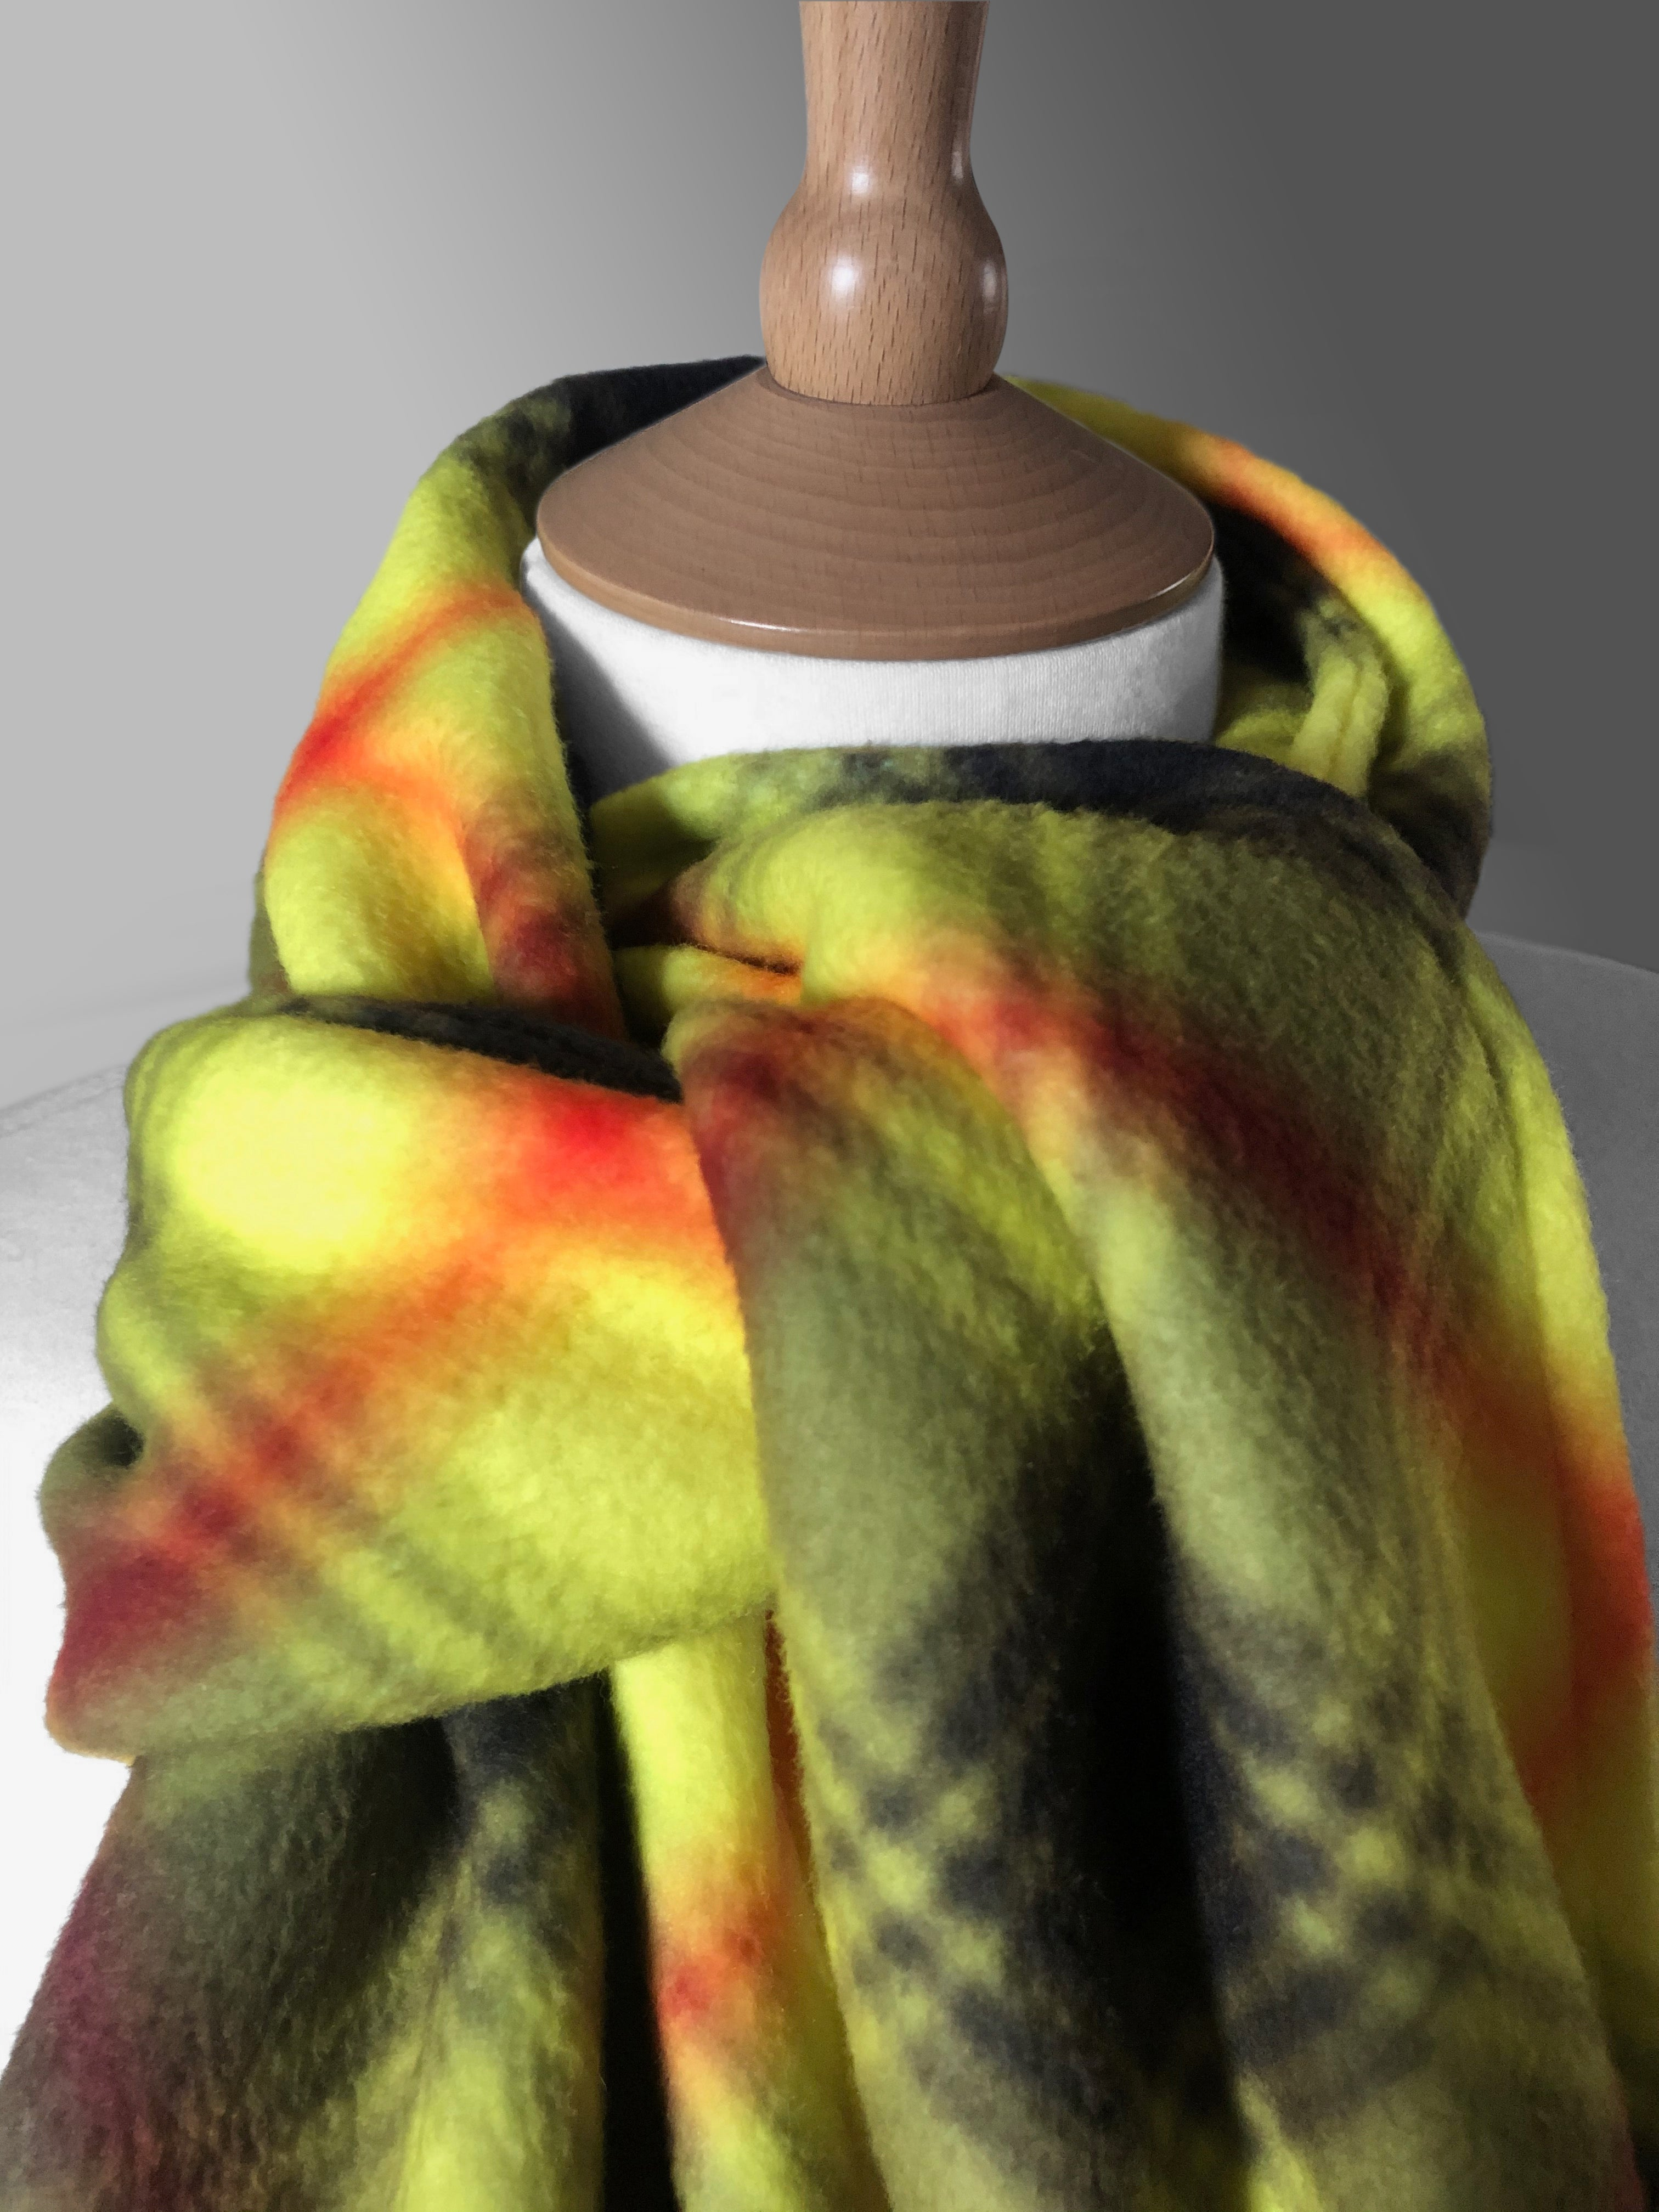 Be Aware Tartan Polar Fleece Scarf - Virohazard - by Steven Patrick Sim